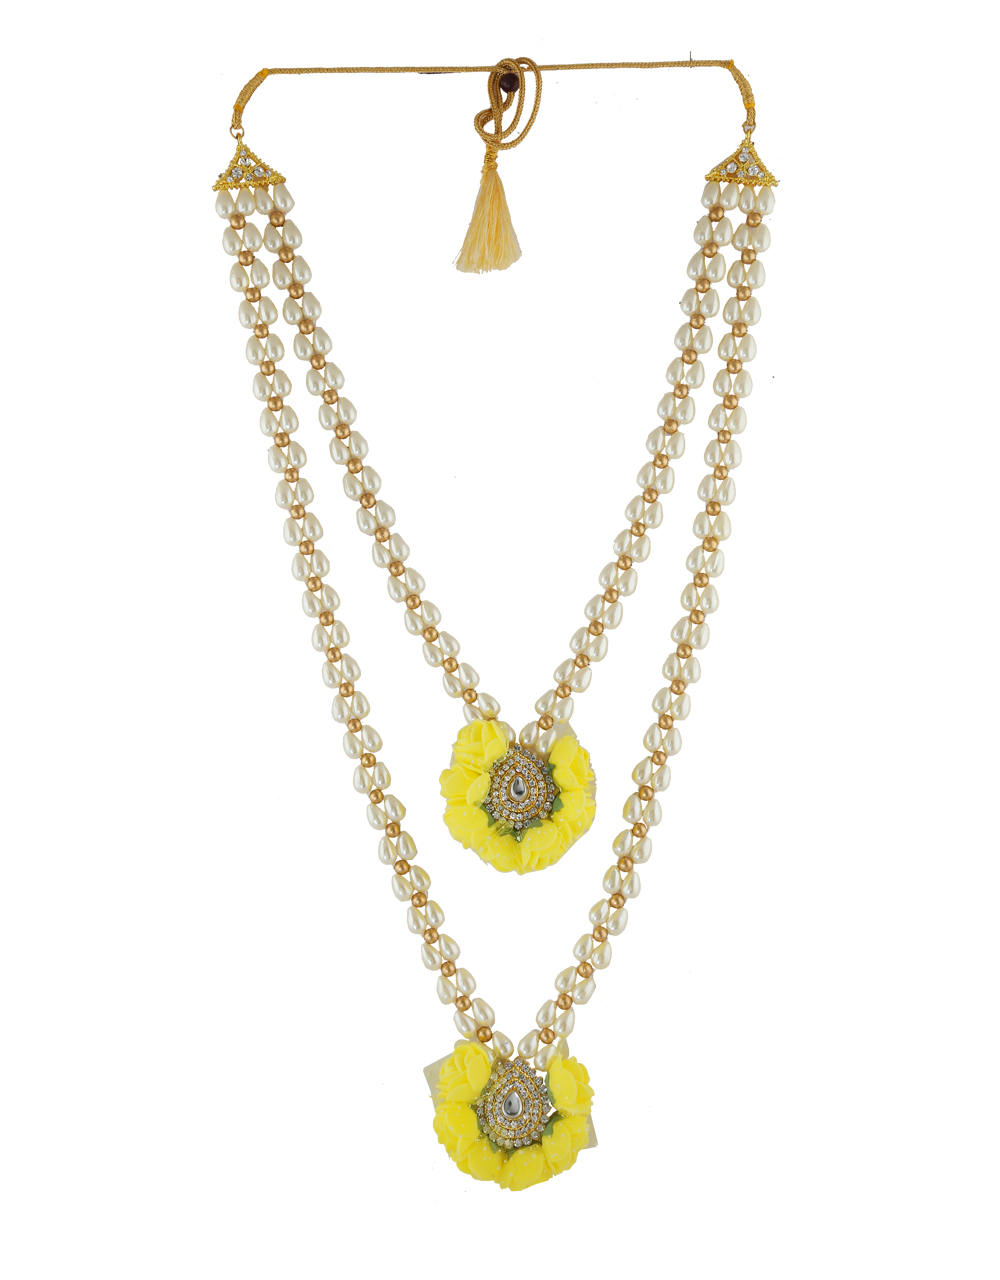 Yellow Colour Fancy Moti Styled Flower Jewellery Necklace For Haldi Ceremony